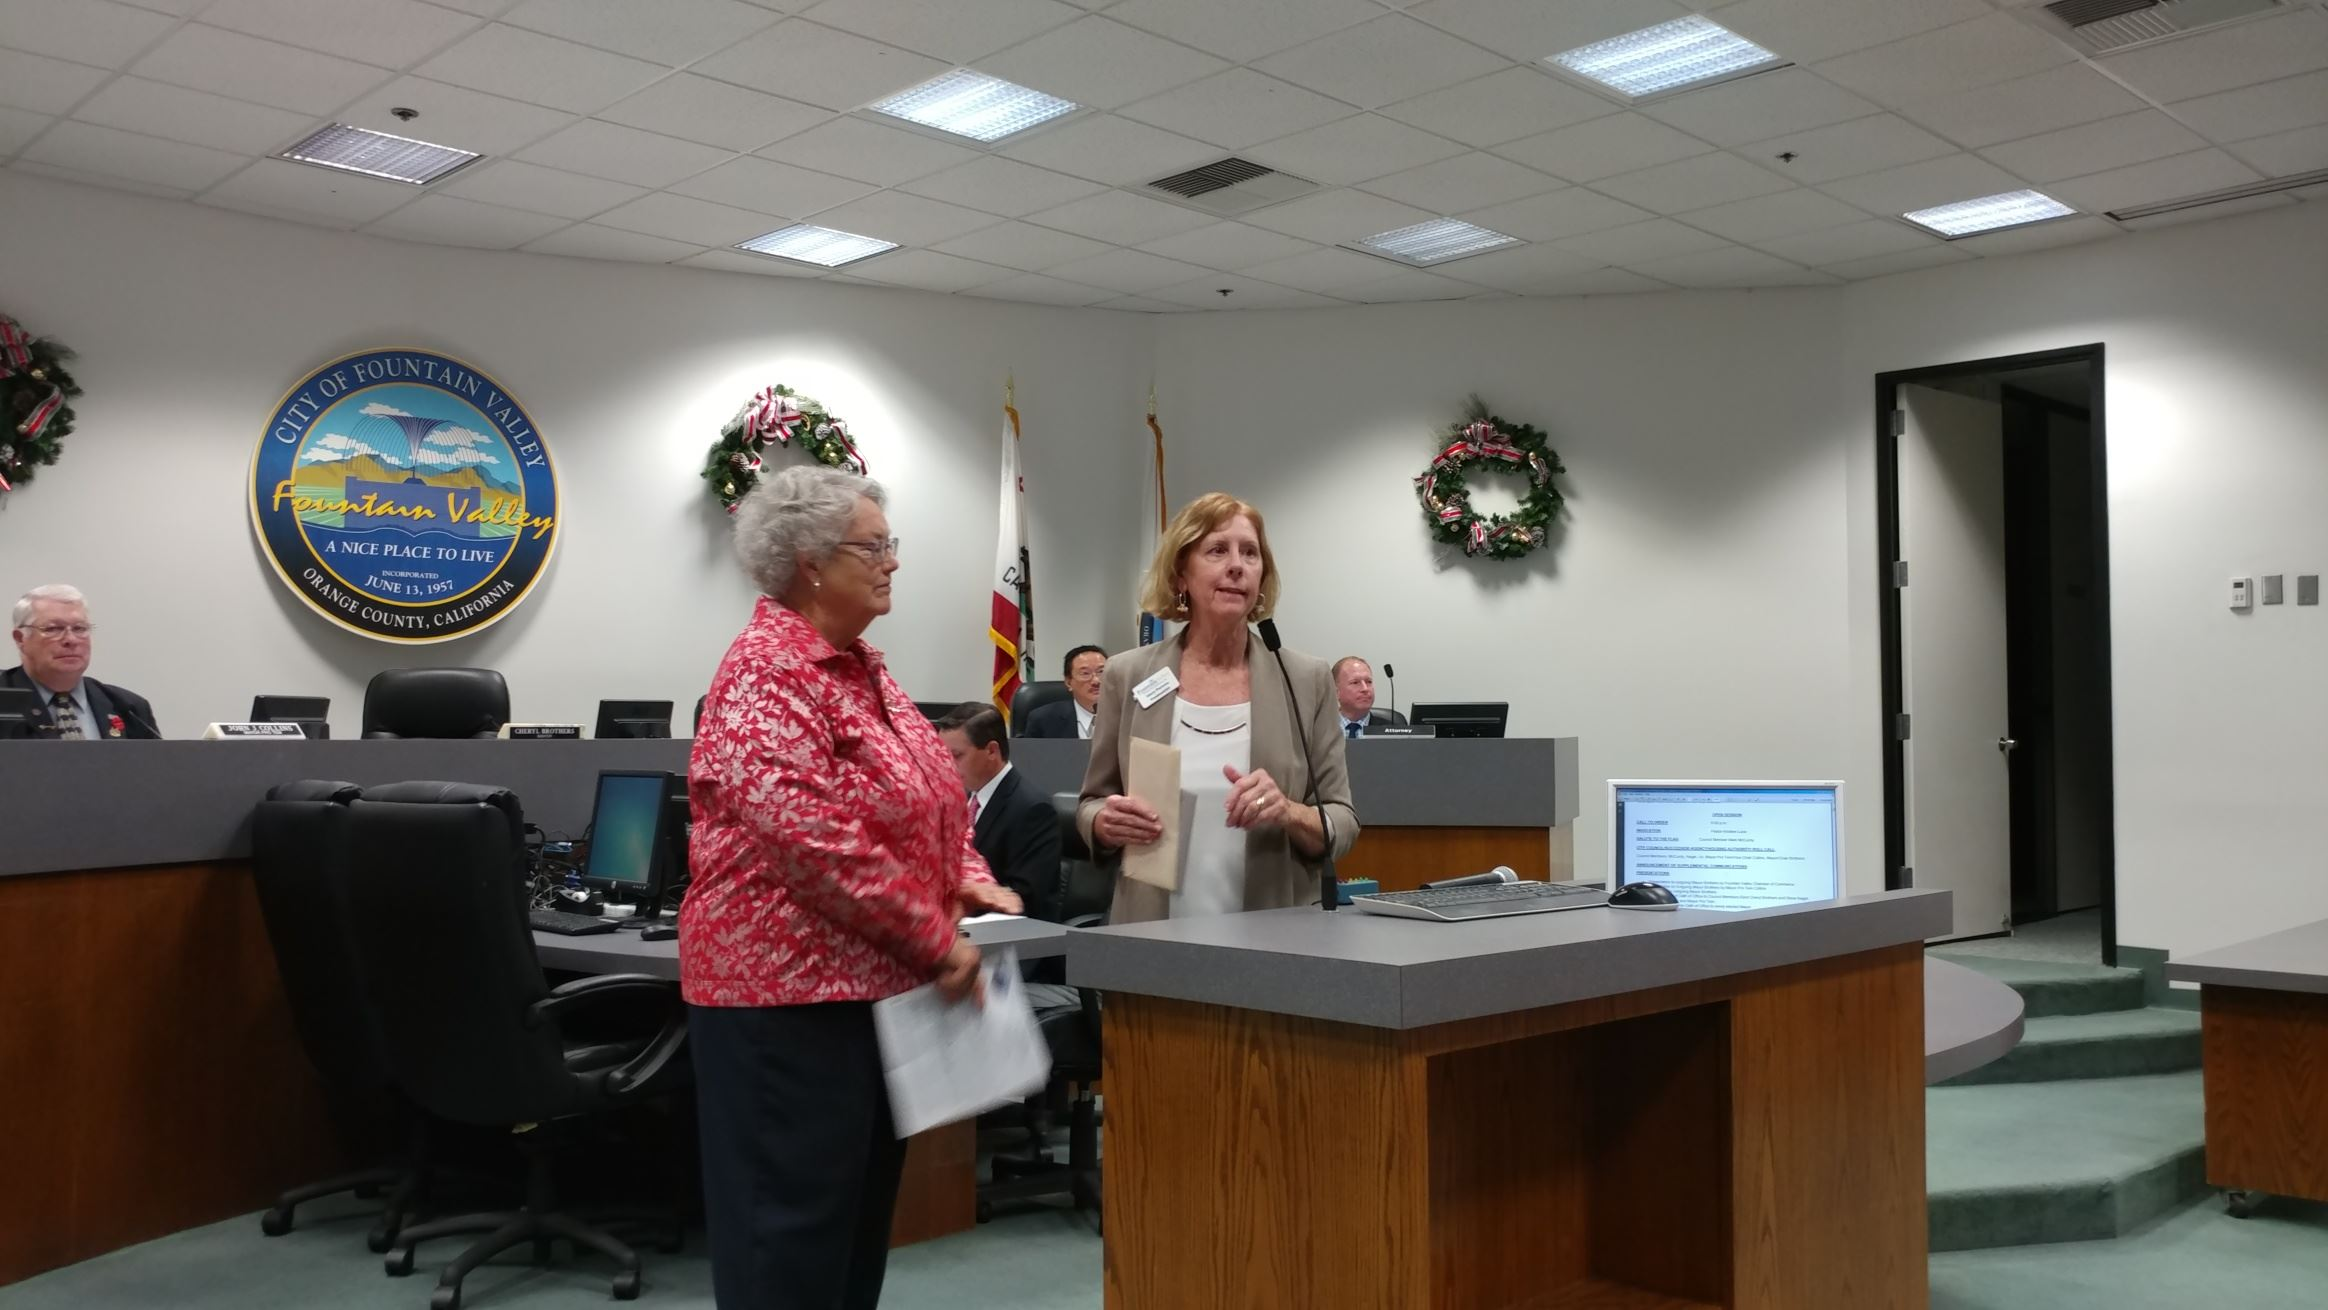 Presentation to outgoing Mayor Brothers  by the Fountain Valley Chamber of Commerce.